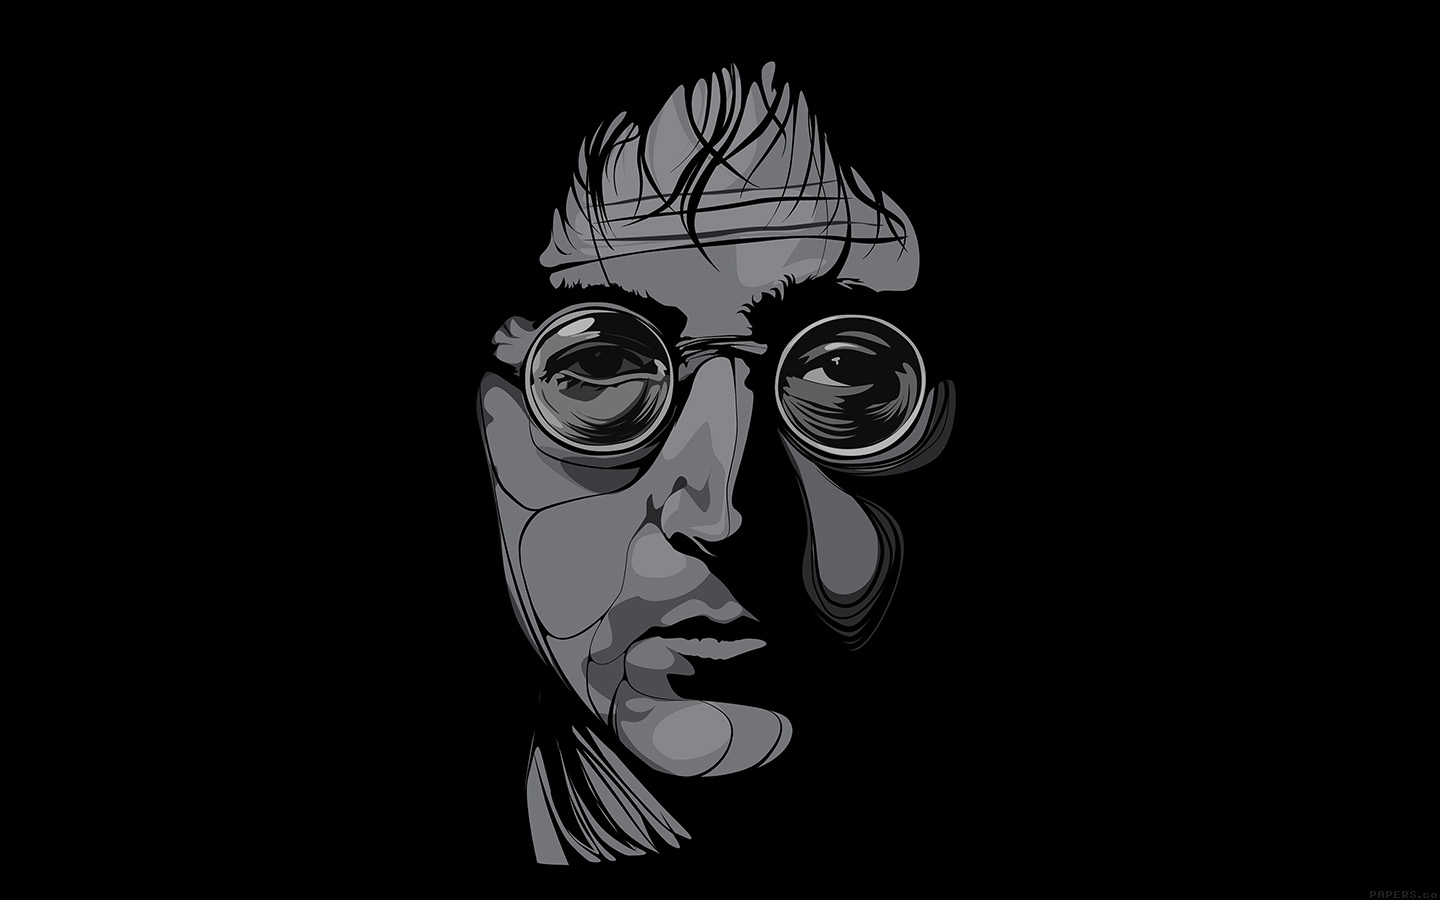 john lennon life essay Background lead member of the english rock group the beatles, john  lennon was a  how did lennon's early life affect his career.